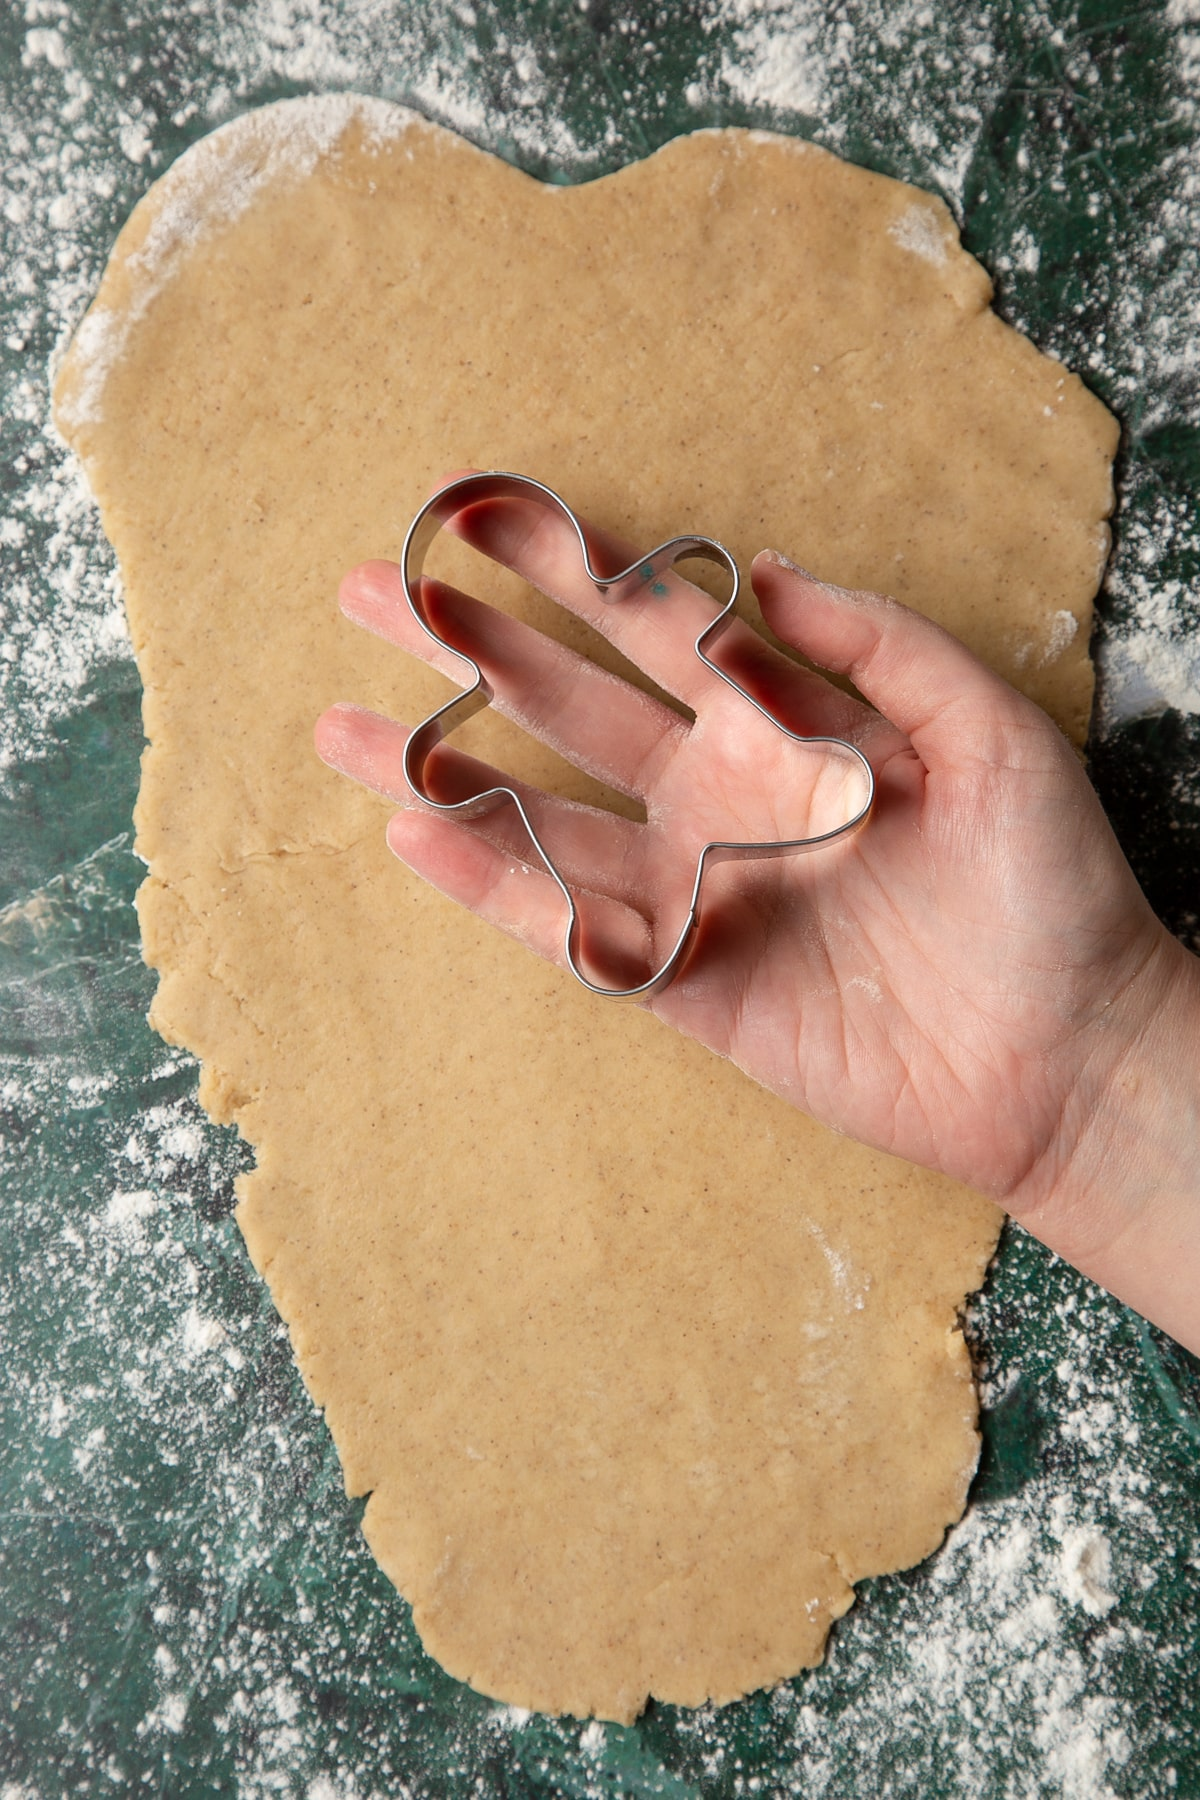 Hand holding a gingerbread man cutter about the size of the palm. Below it, cookie dough is rolled out.